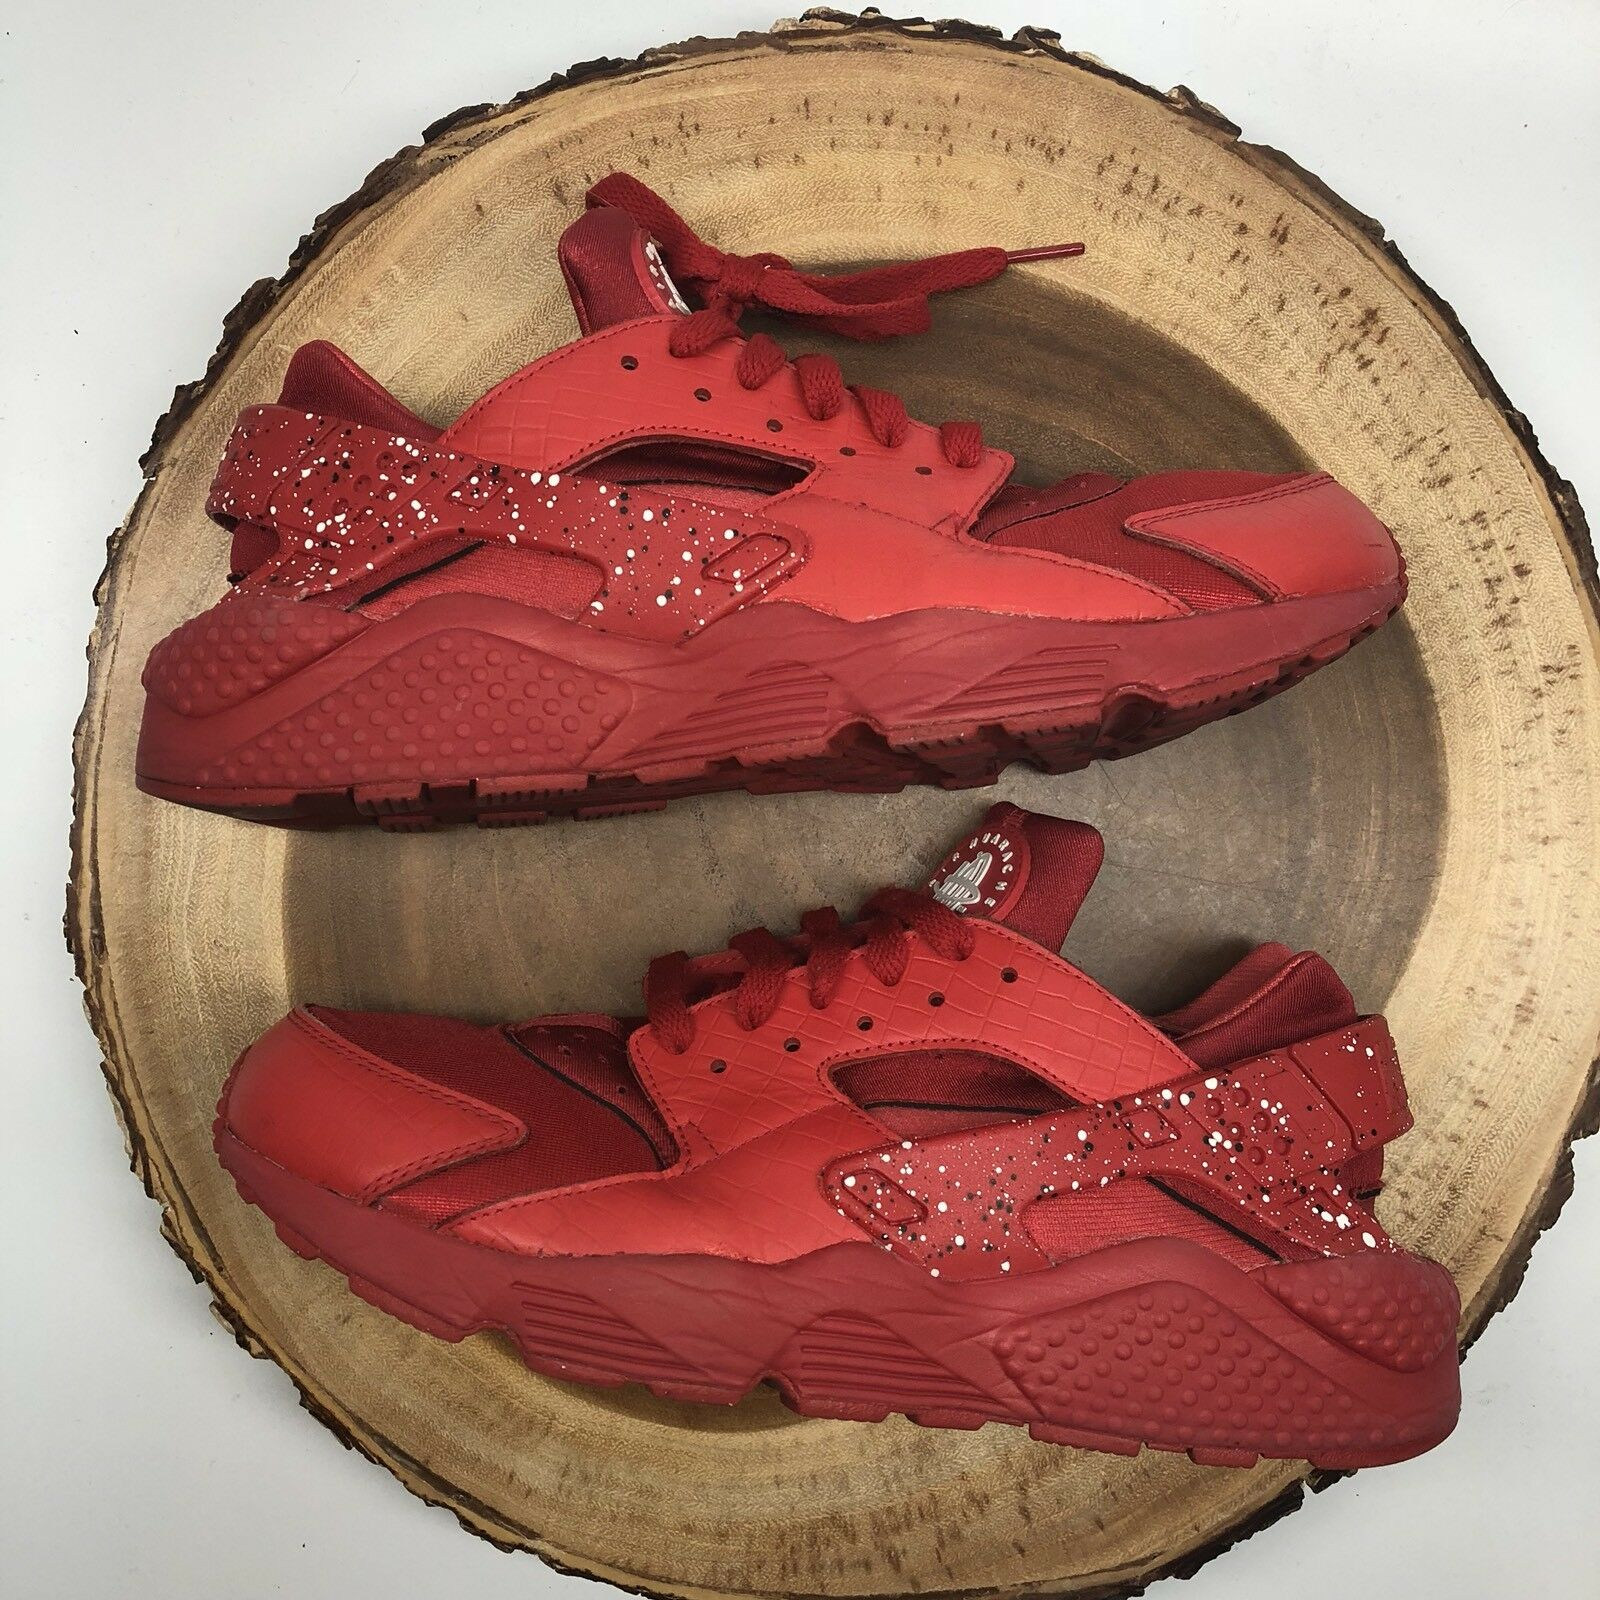 Nike Air Huarache NikeiD Red Splatter 777330-997 Comfortable The latest discount shoes for men and women